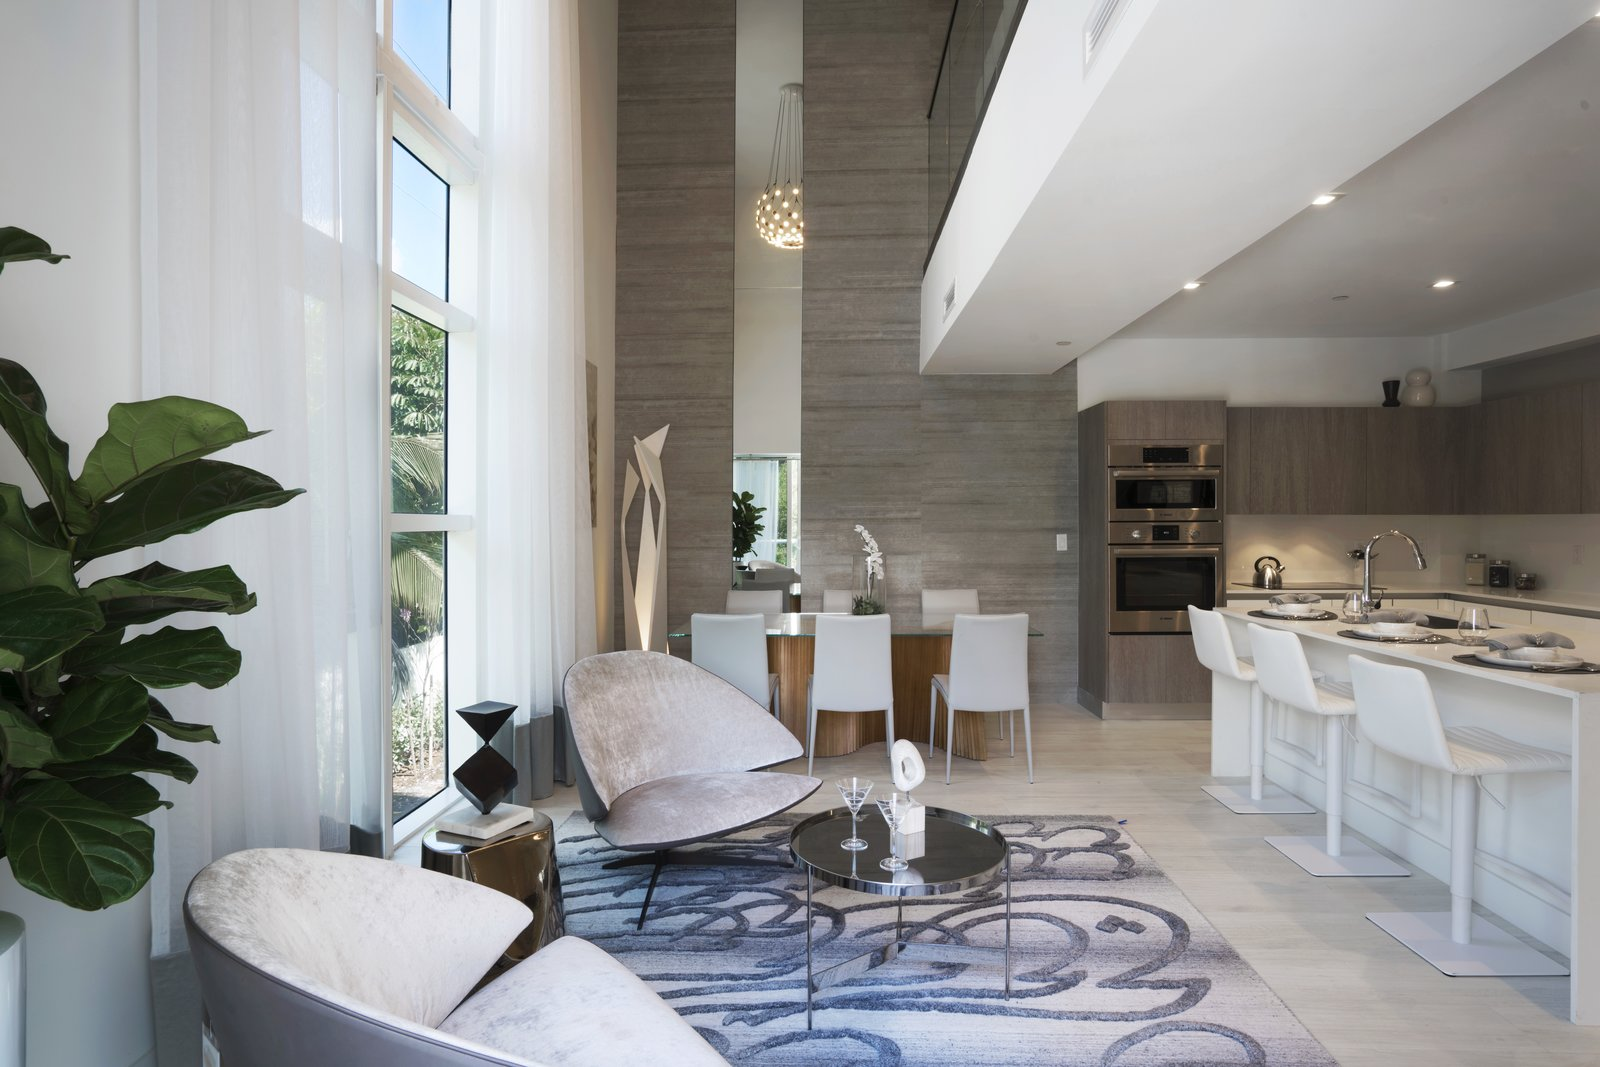 Chef-inspired kitchen, formal dining and seating area